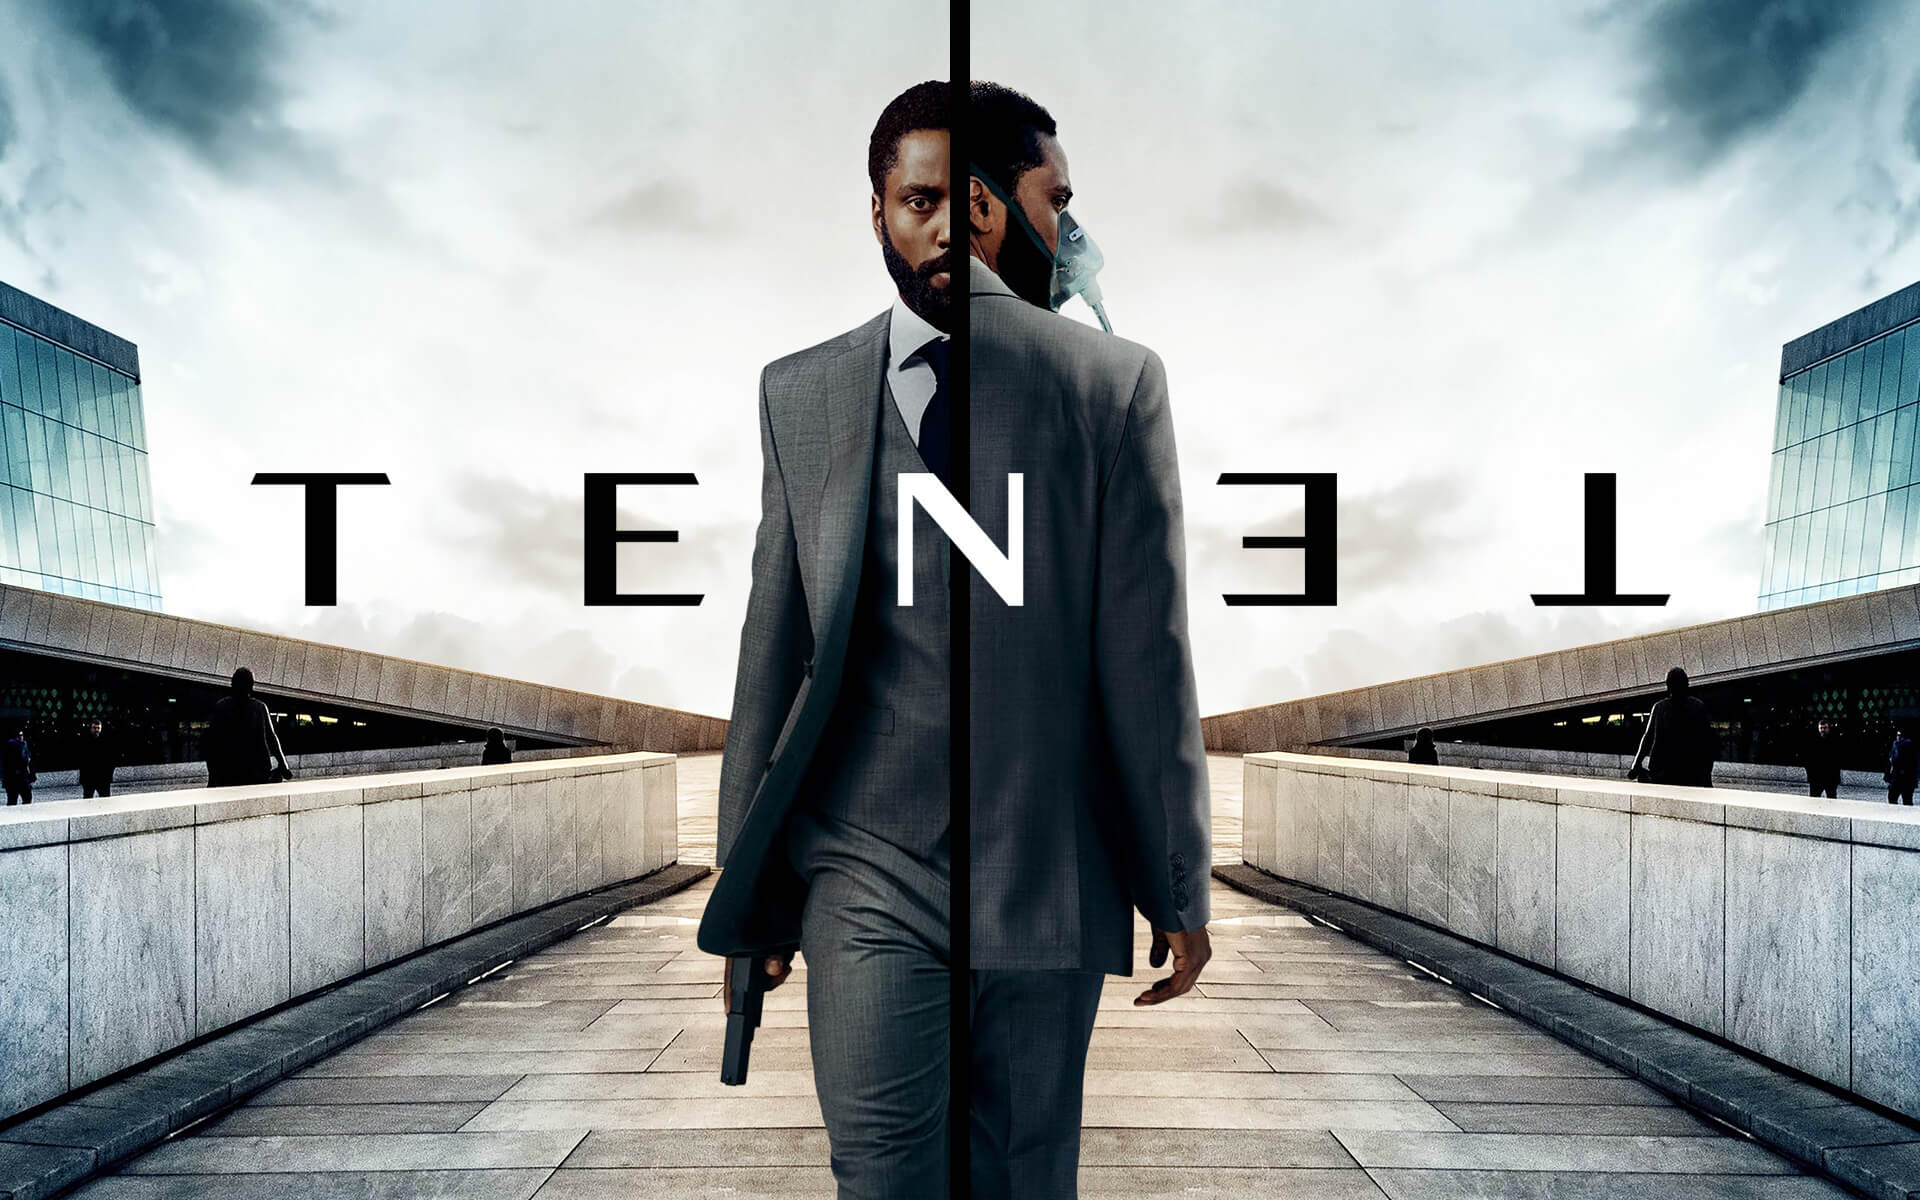 Aussies the first to see the latest movie release Tenet